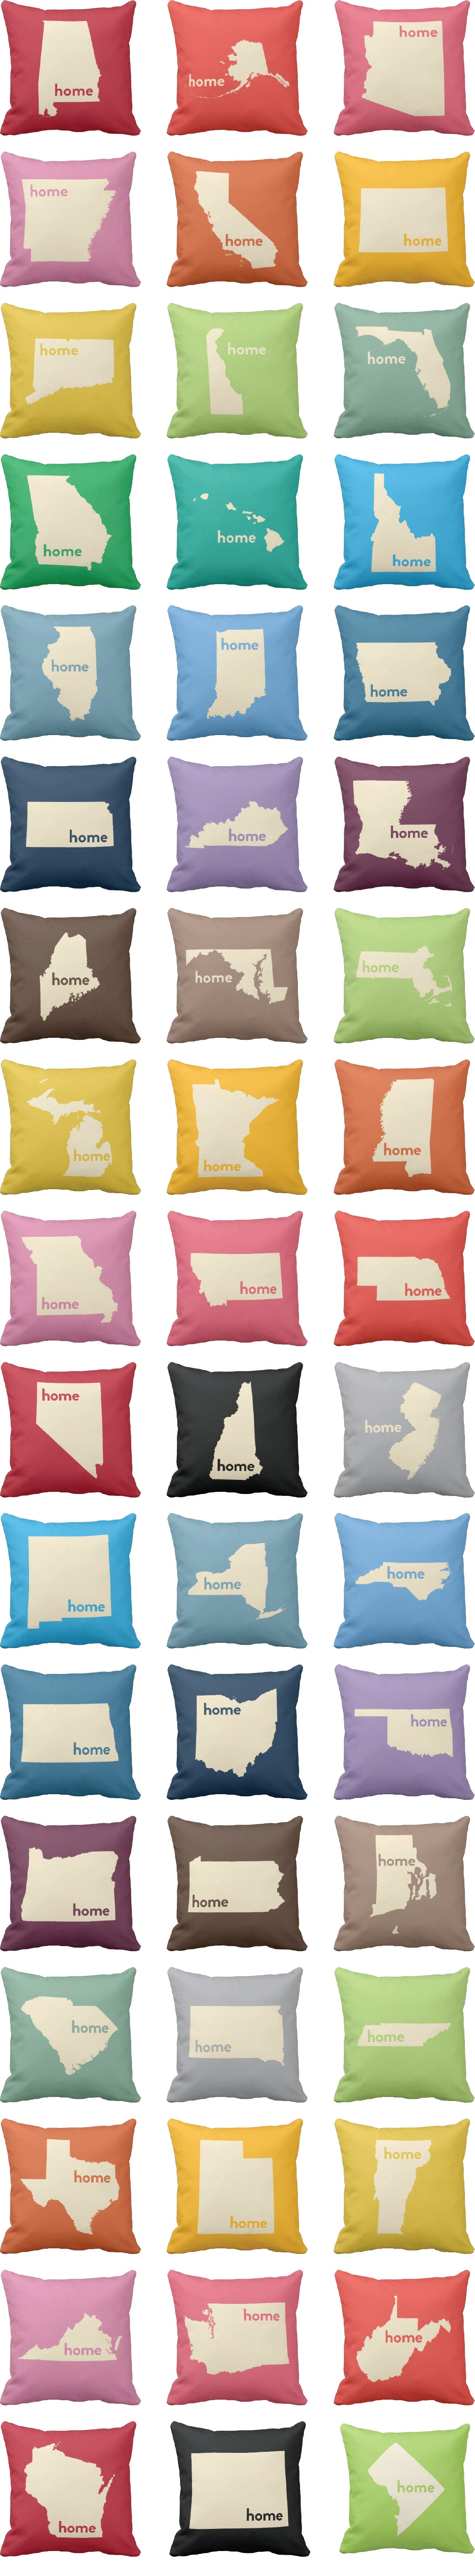 Home State Pillows